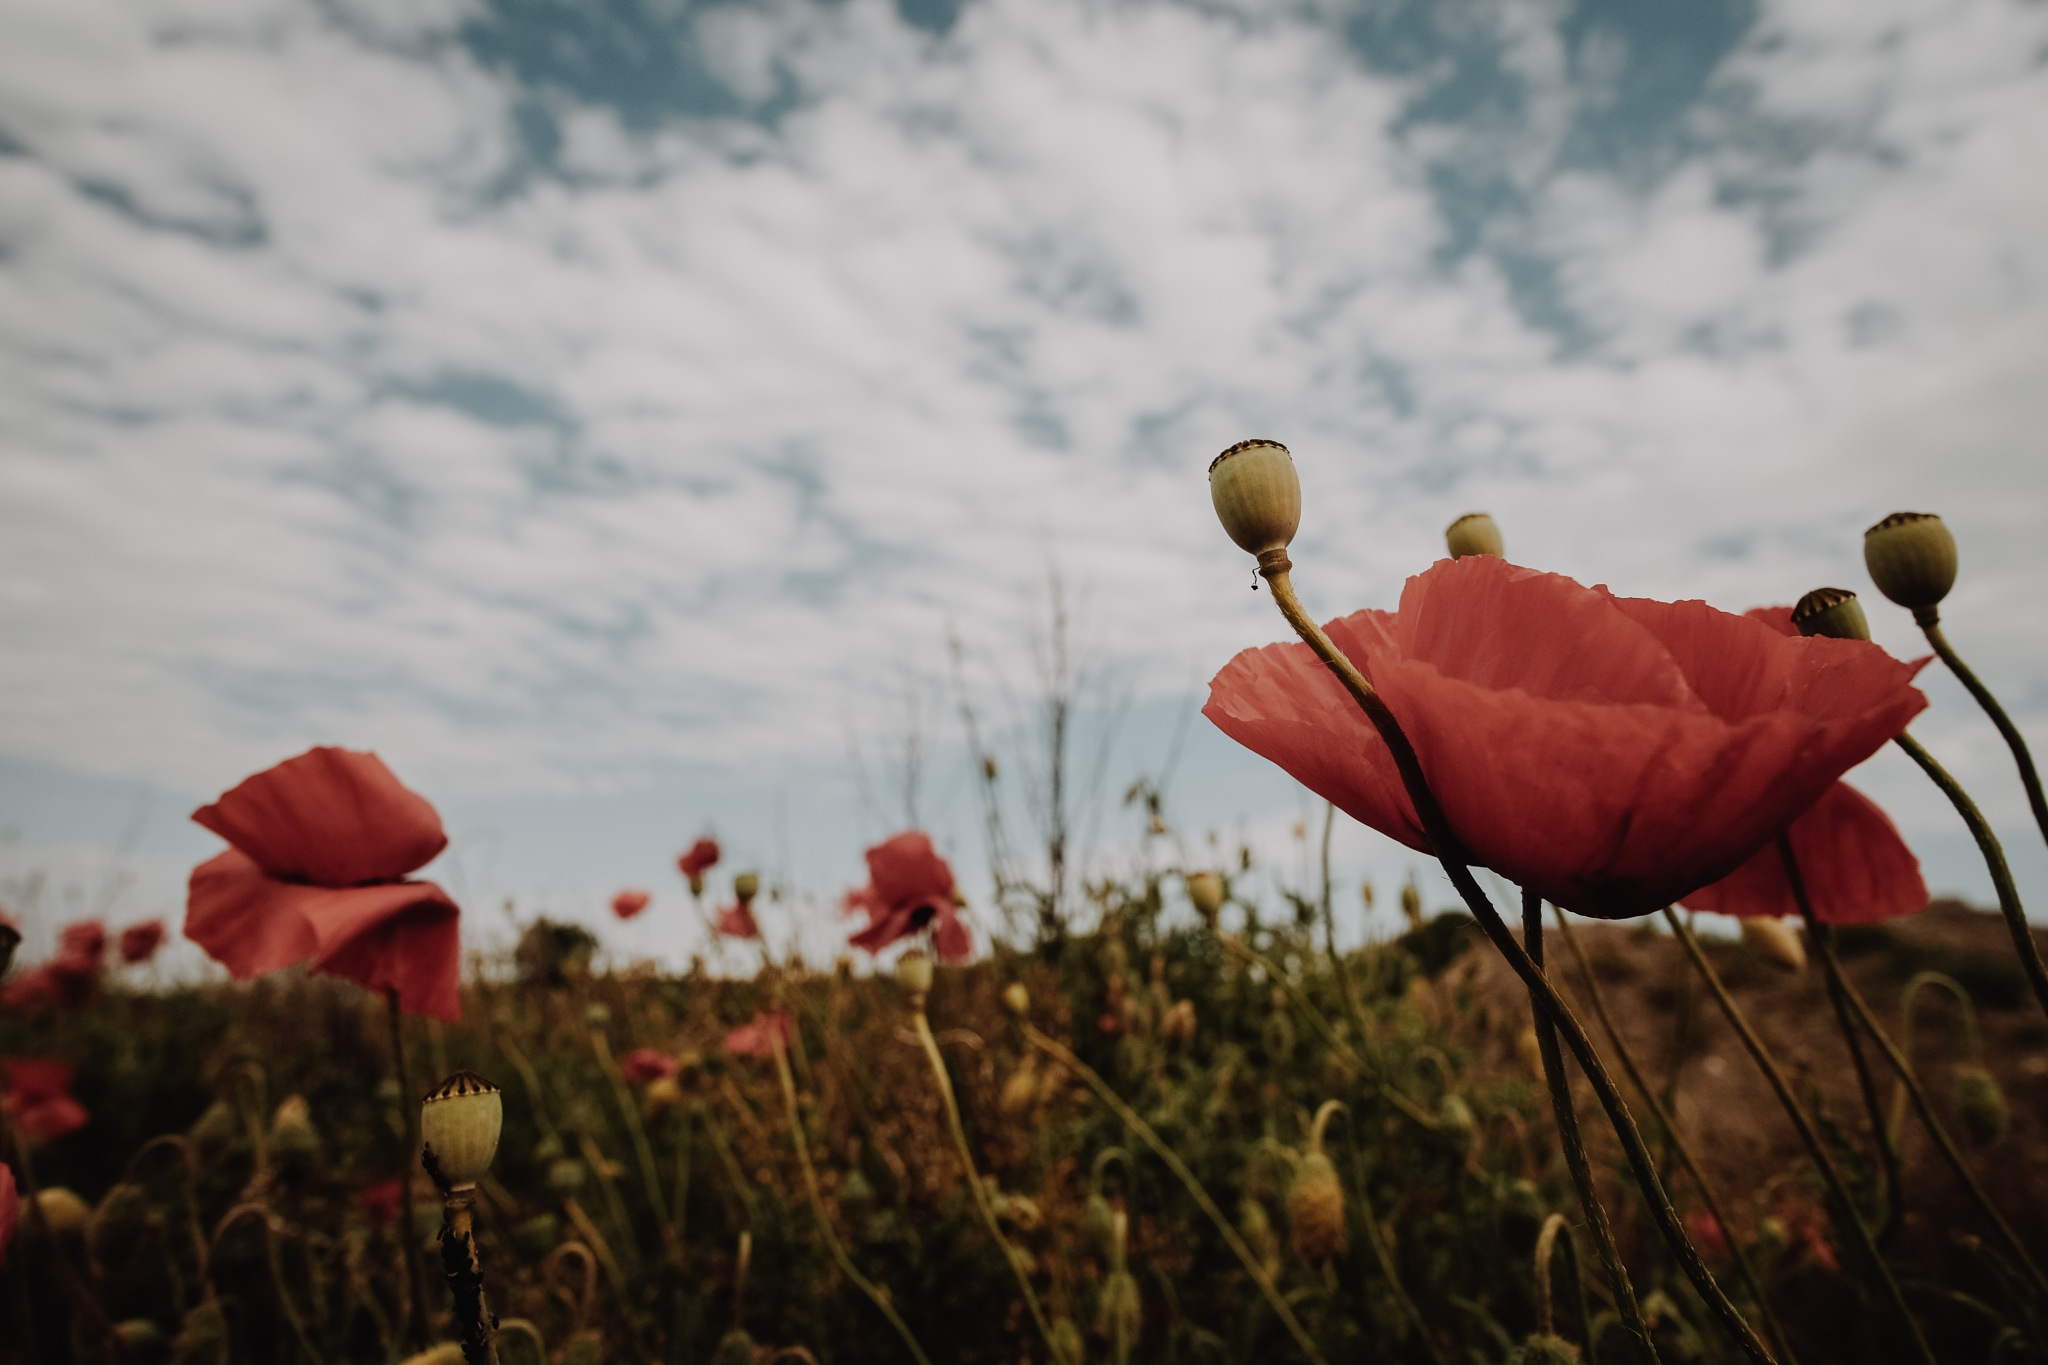 Some Poppies by MirrorlessFocus